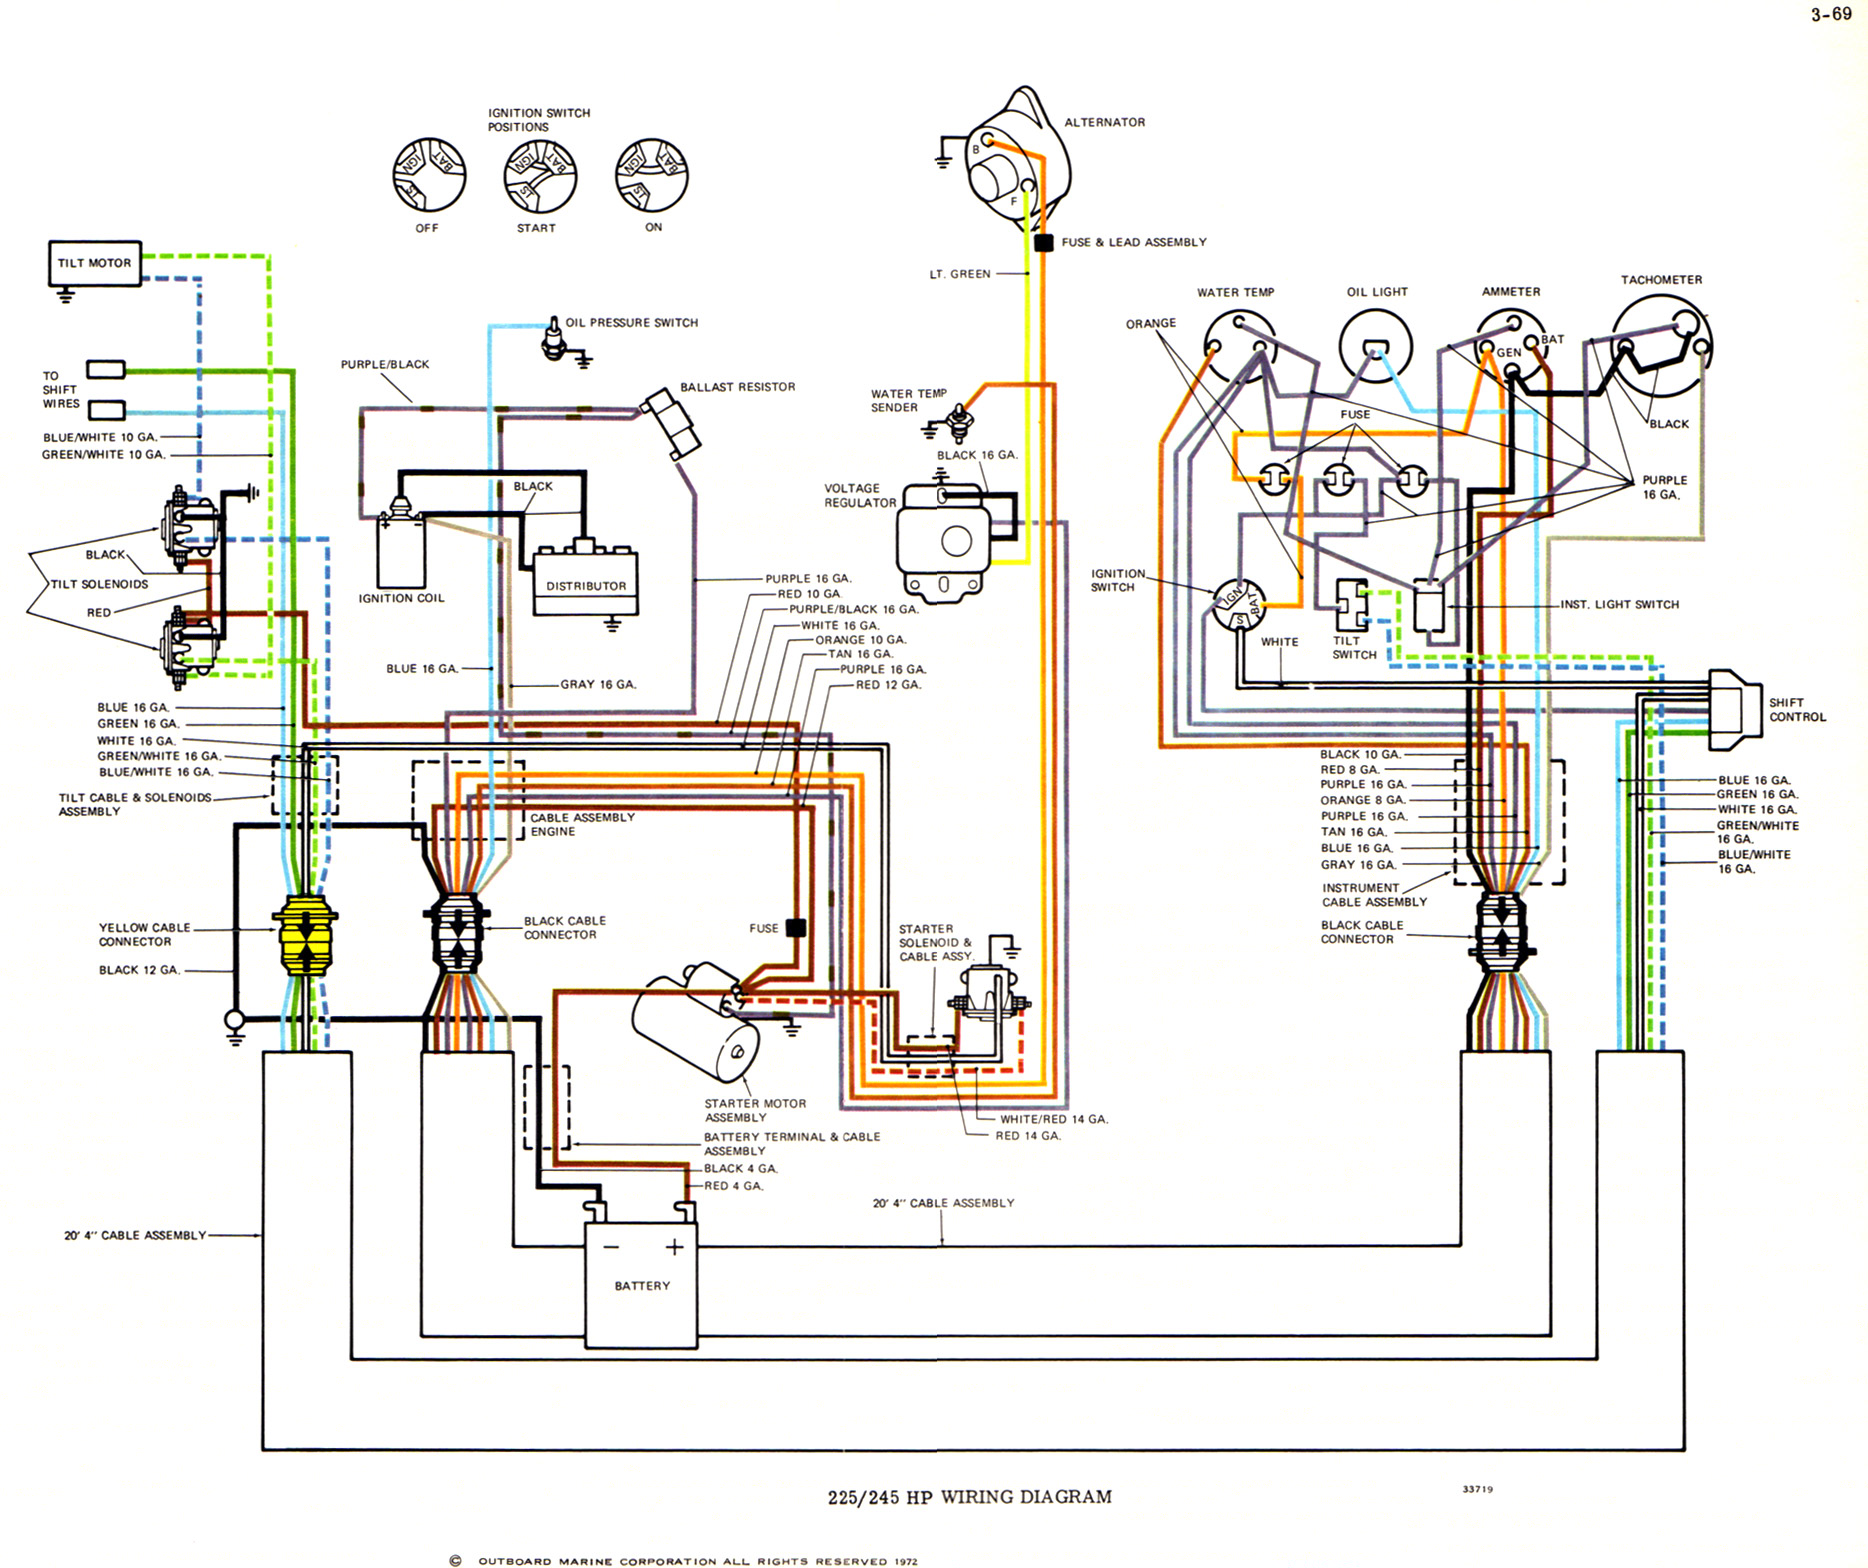 73_OMC_V8_all_big omc wiring harness diagram johmson wiring harness \u2022 wiring alternator wiring diagram omc cobra at gsmx.co